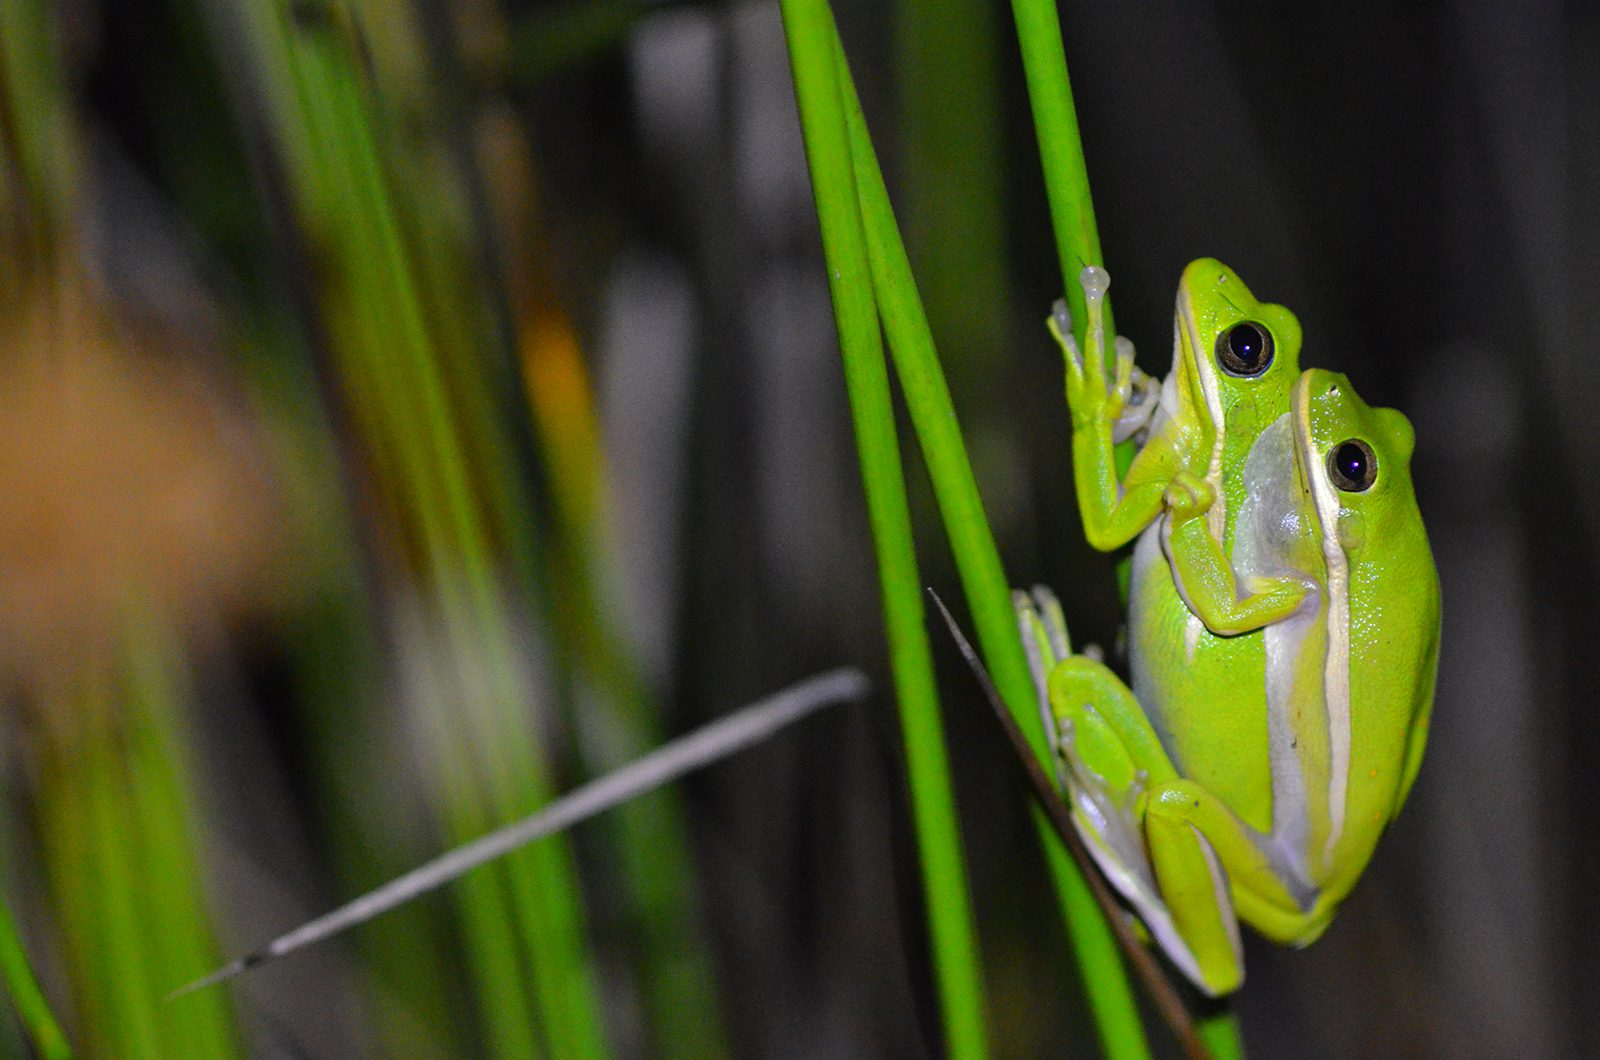 A photo of a pair of green tree frogs.